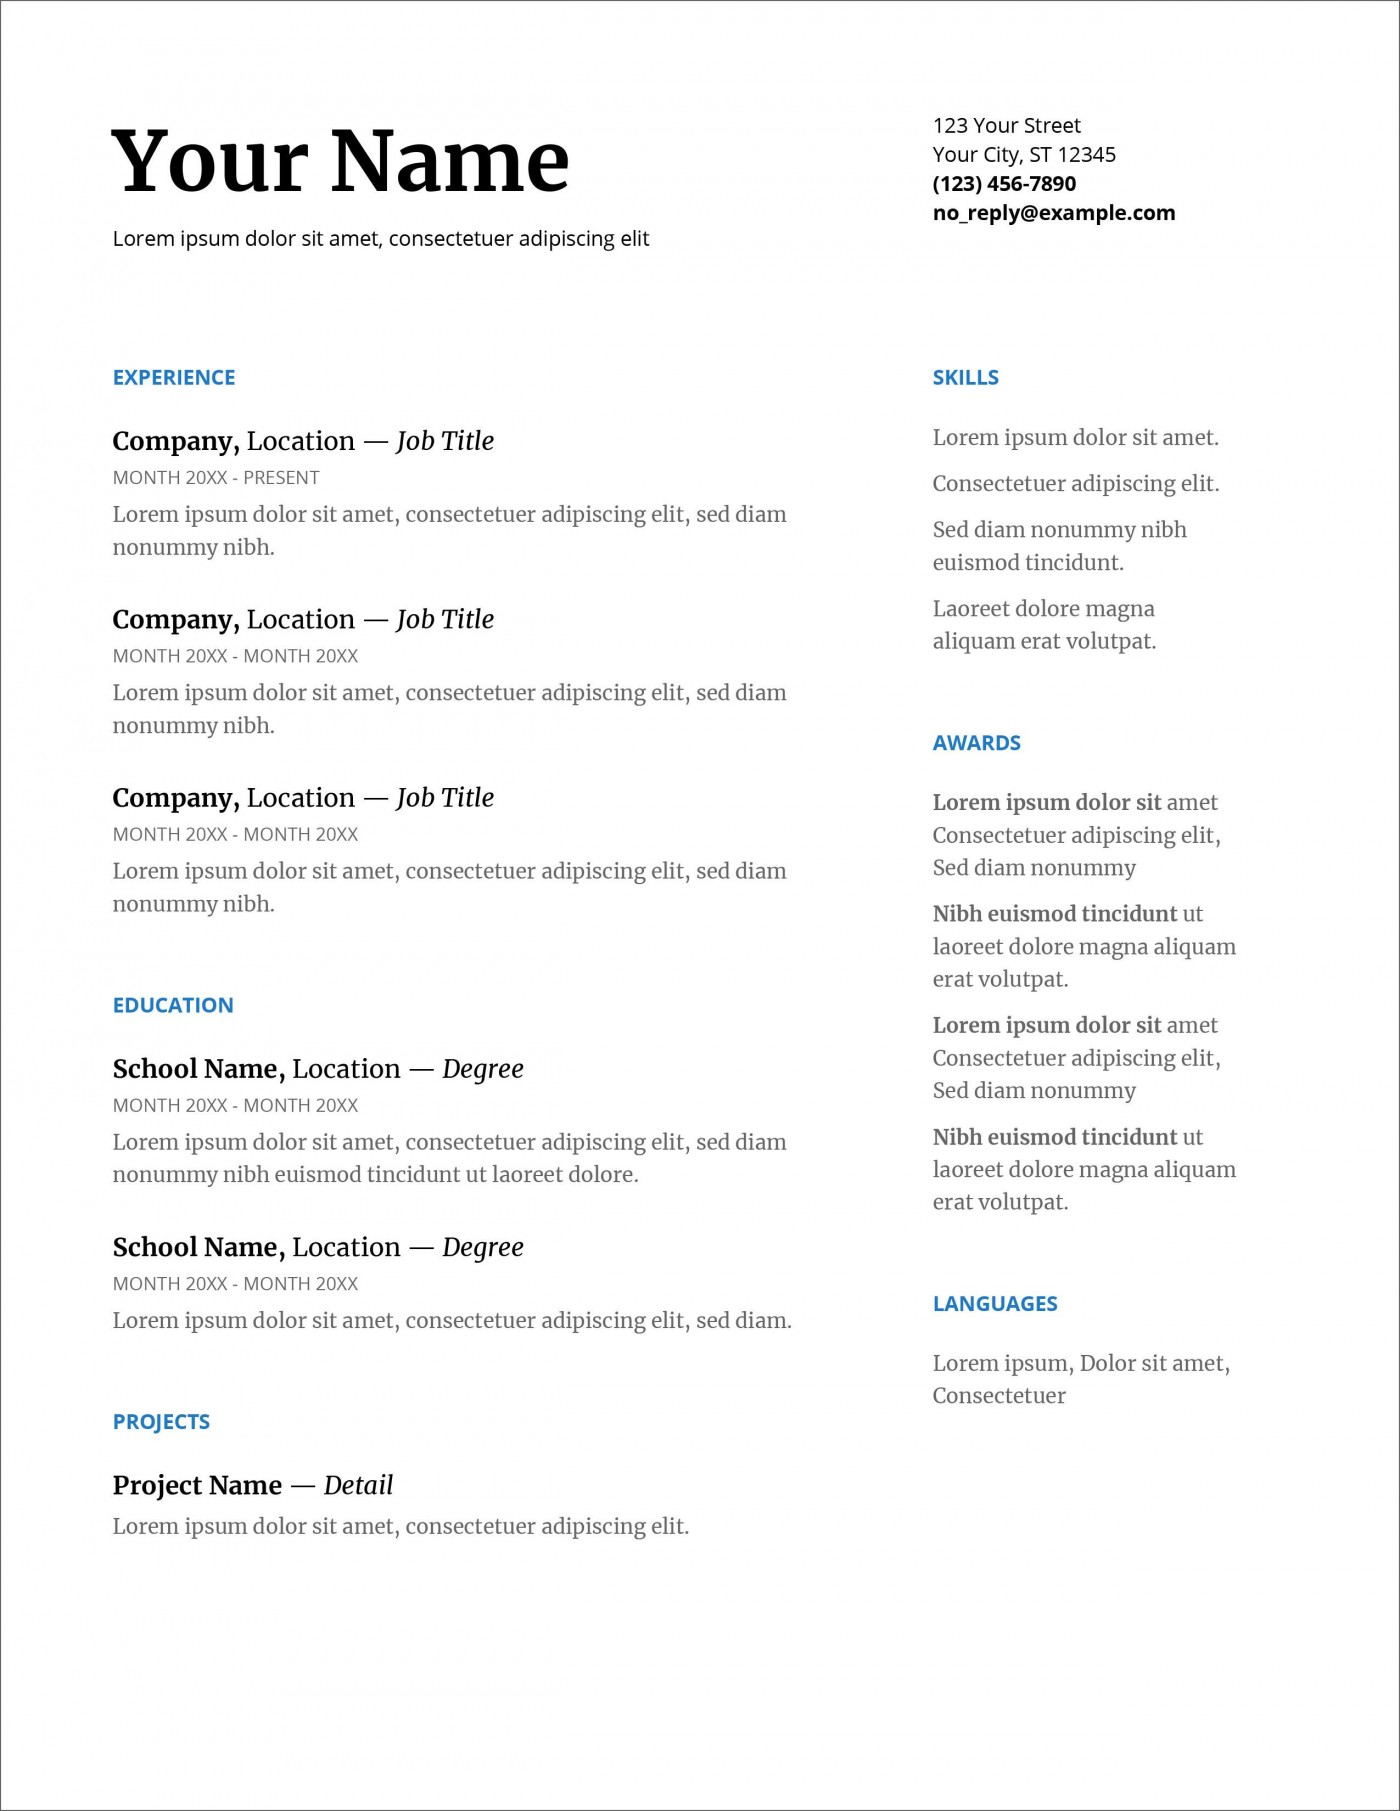 007 Fearsome Download Resume Template Word 2007 High Resolution 1400